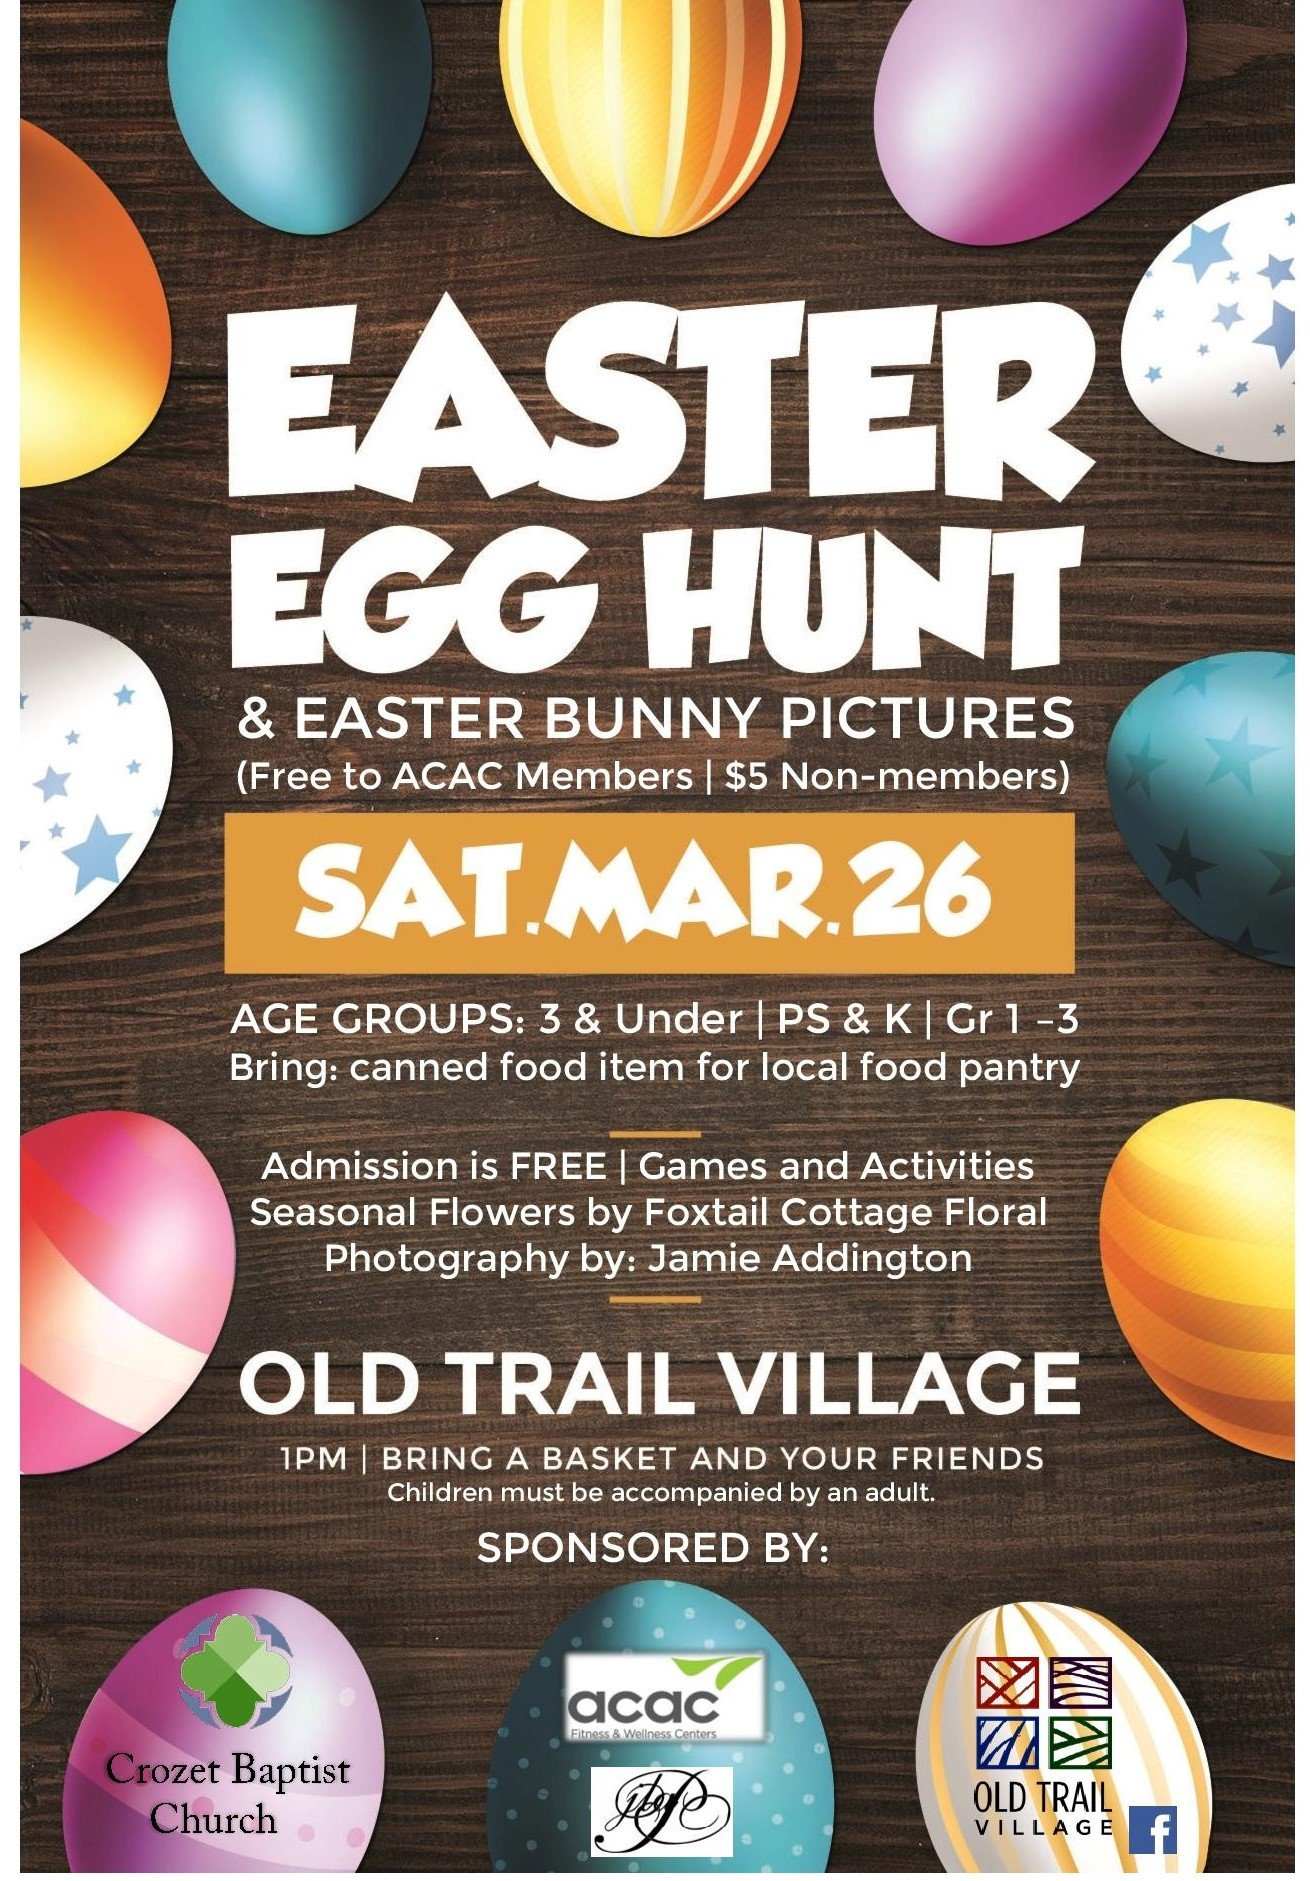 Easter Egg Hunt Flyer Easter Egg Hunt & Realcrozetva